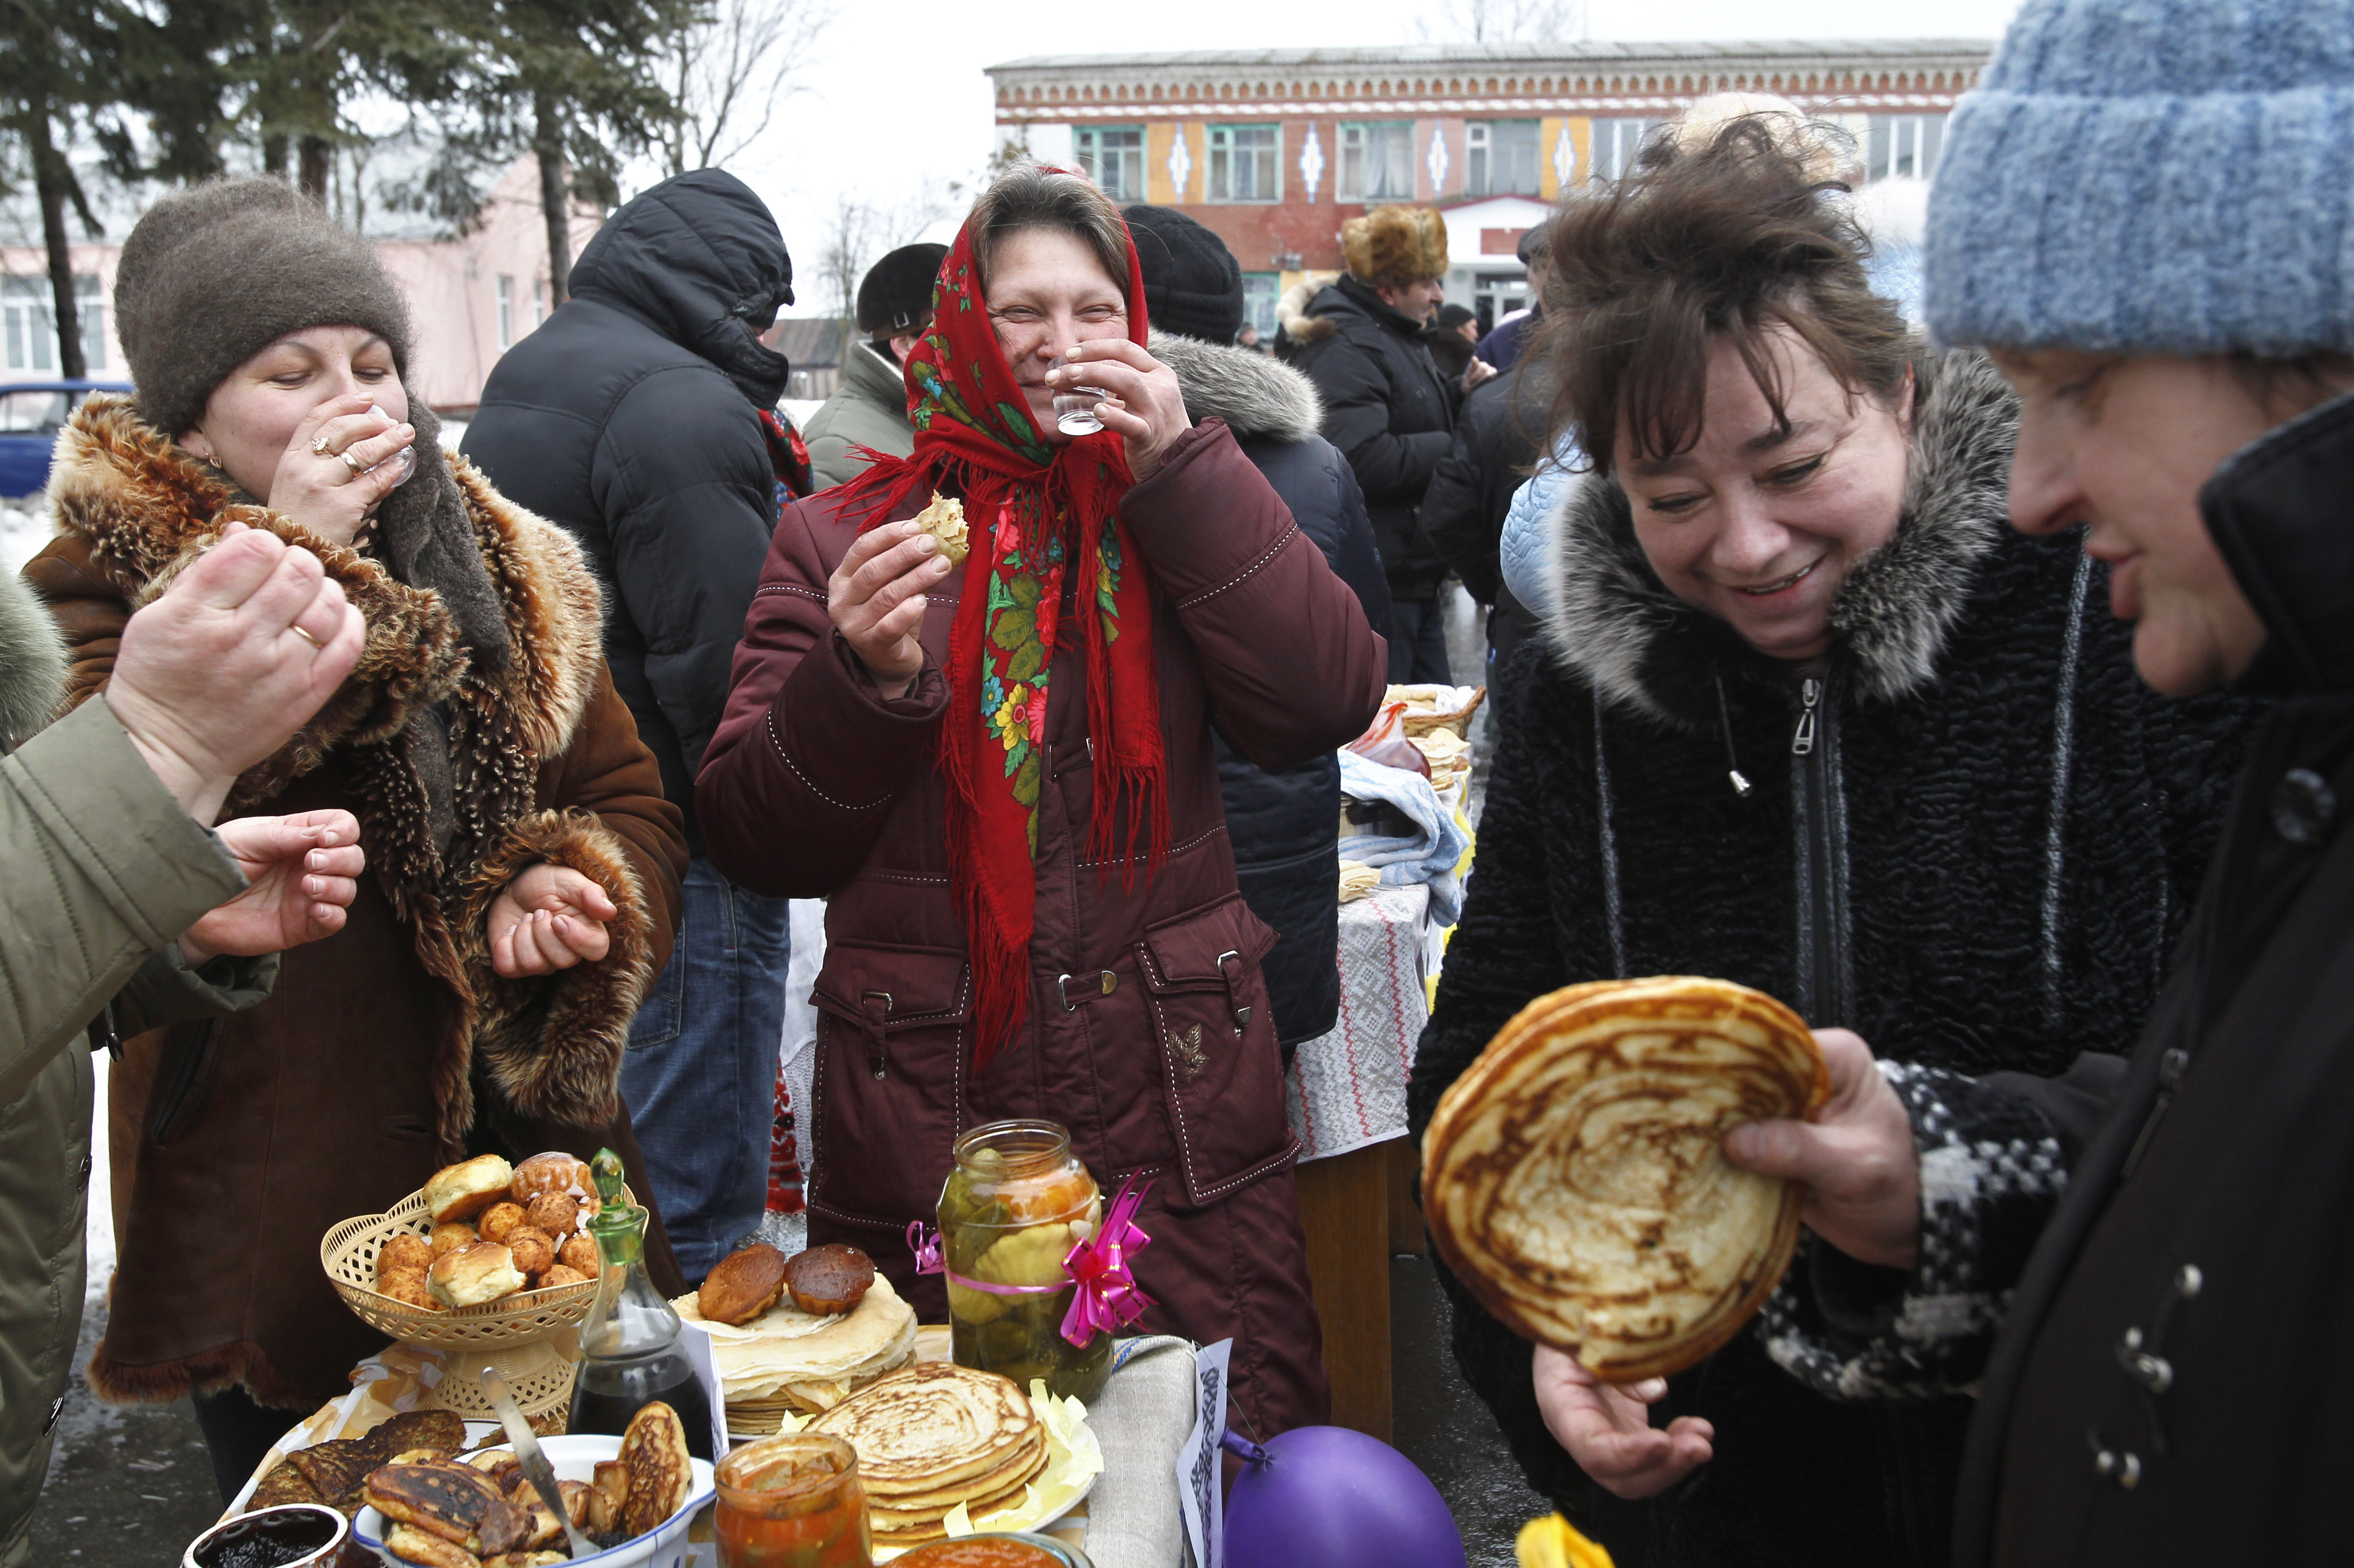 Belarusian woman drink vodka and sample more traditionally sized blinis.